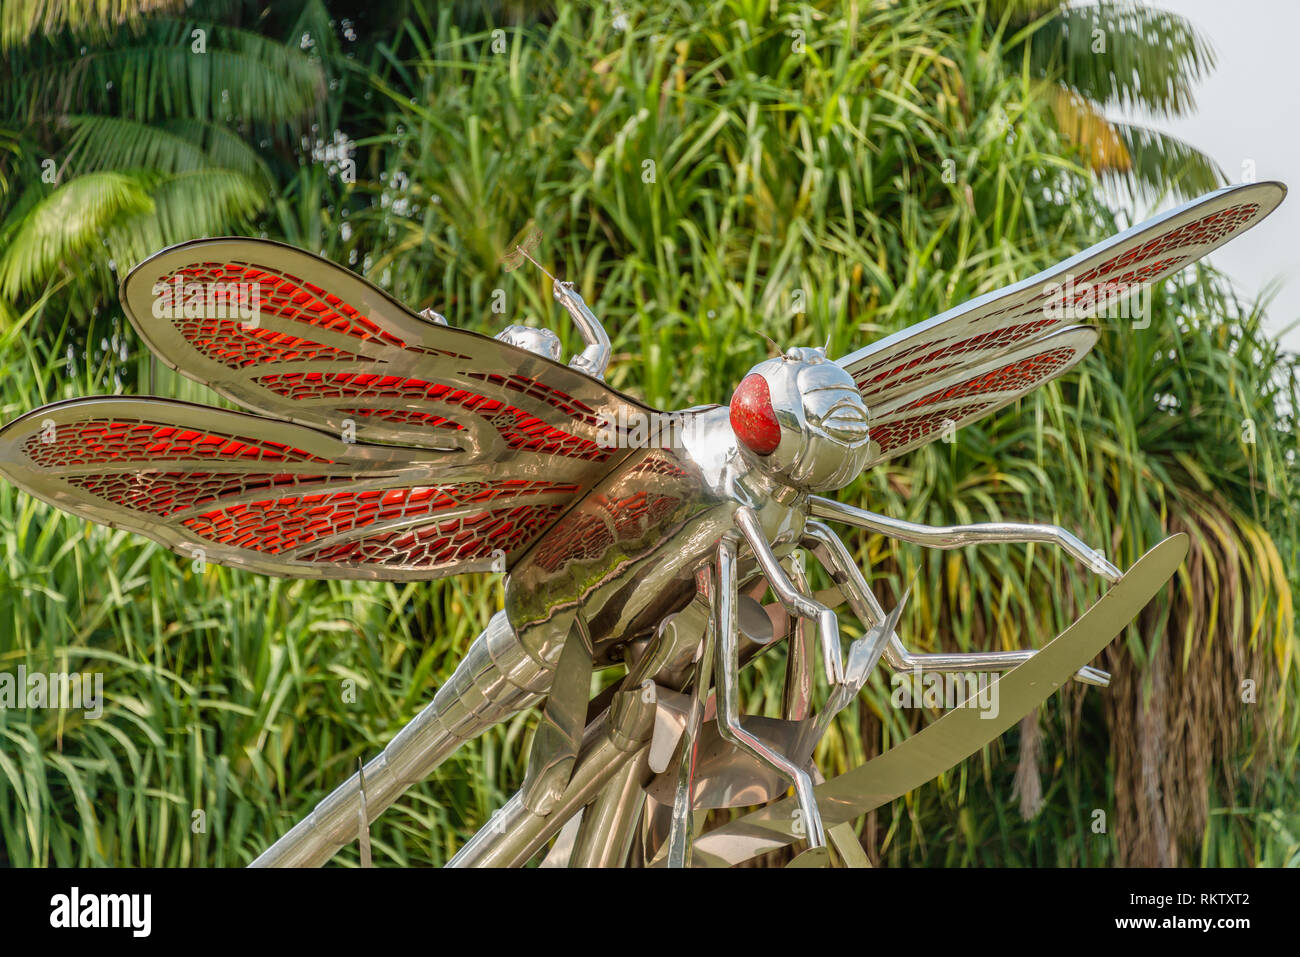 Dragonfly sculpture at Gardens by the Bay, Singapore | Libellen Skulptur im Gardens by the Bay, Singapur - Stock Image